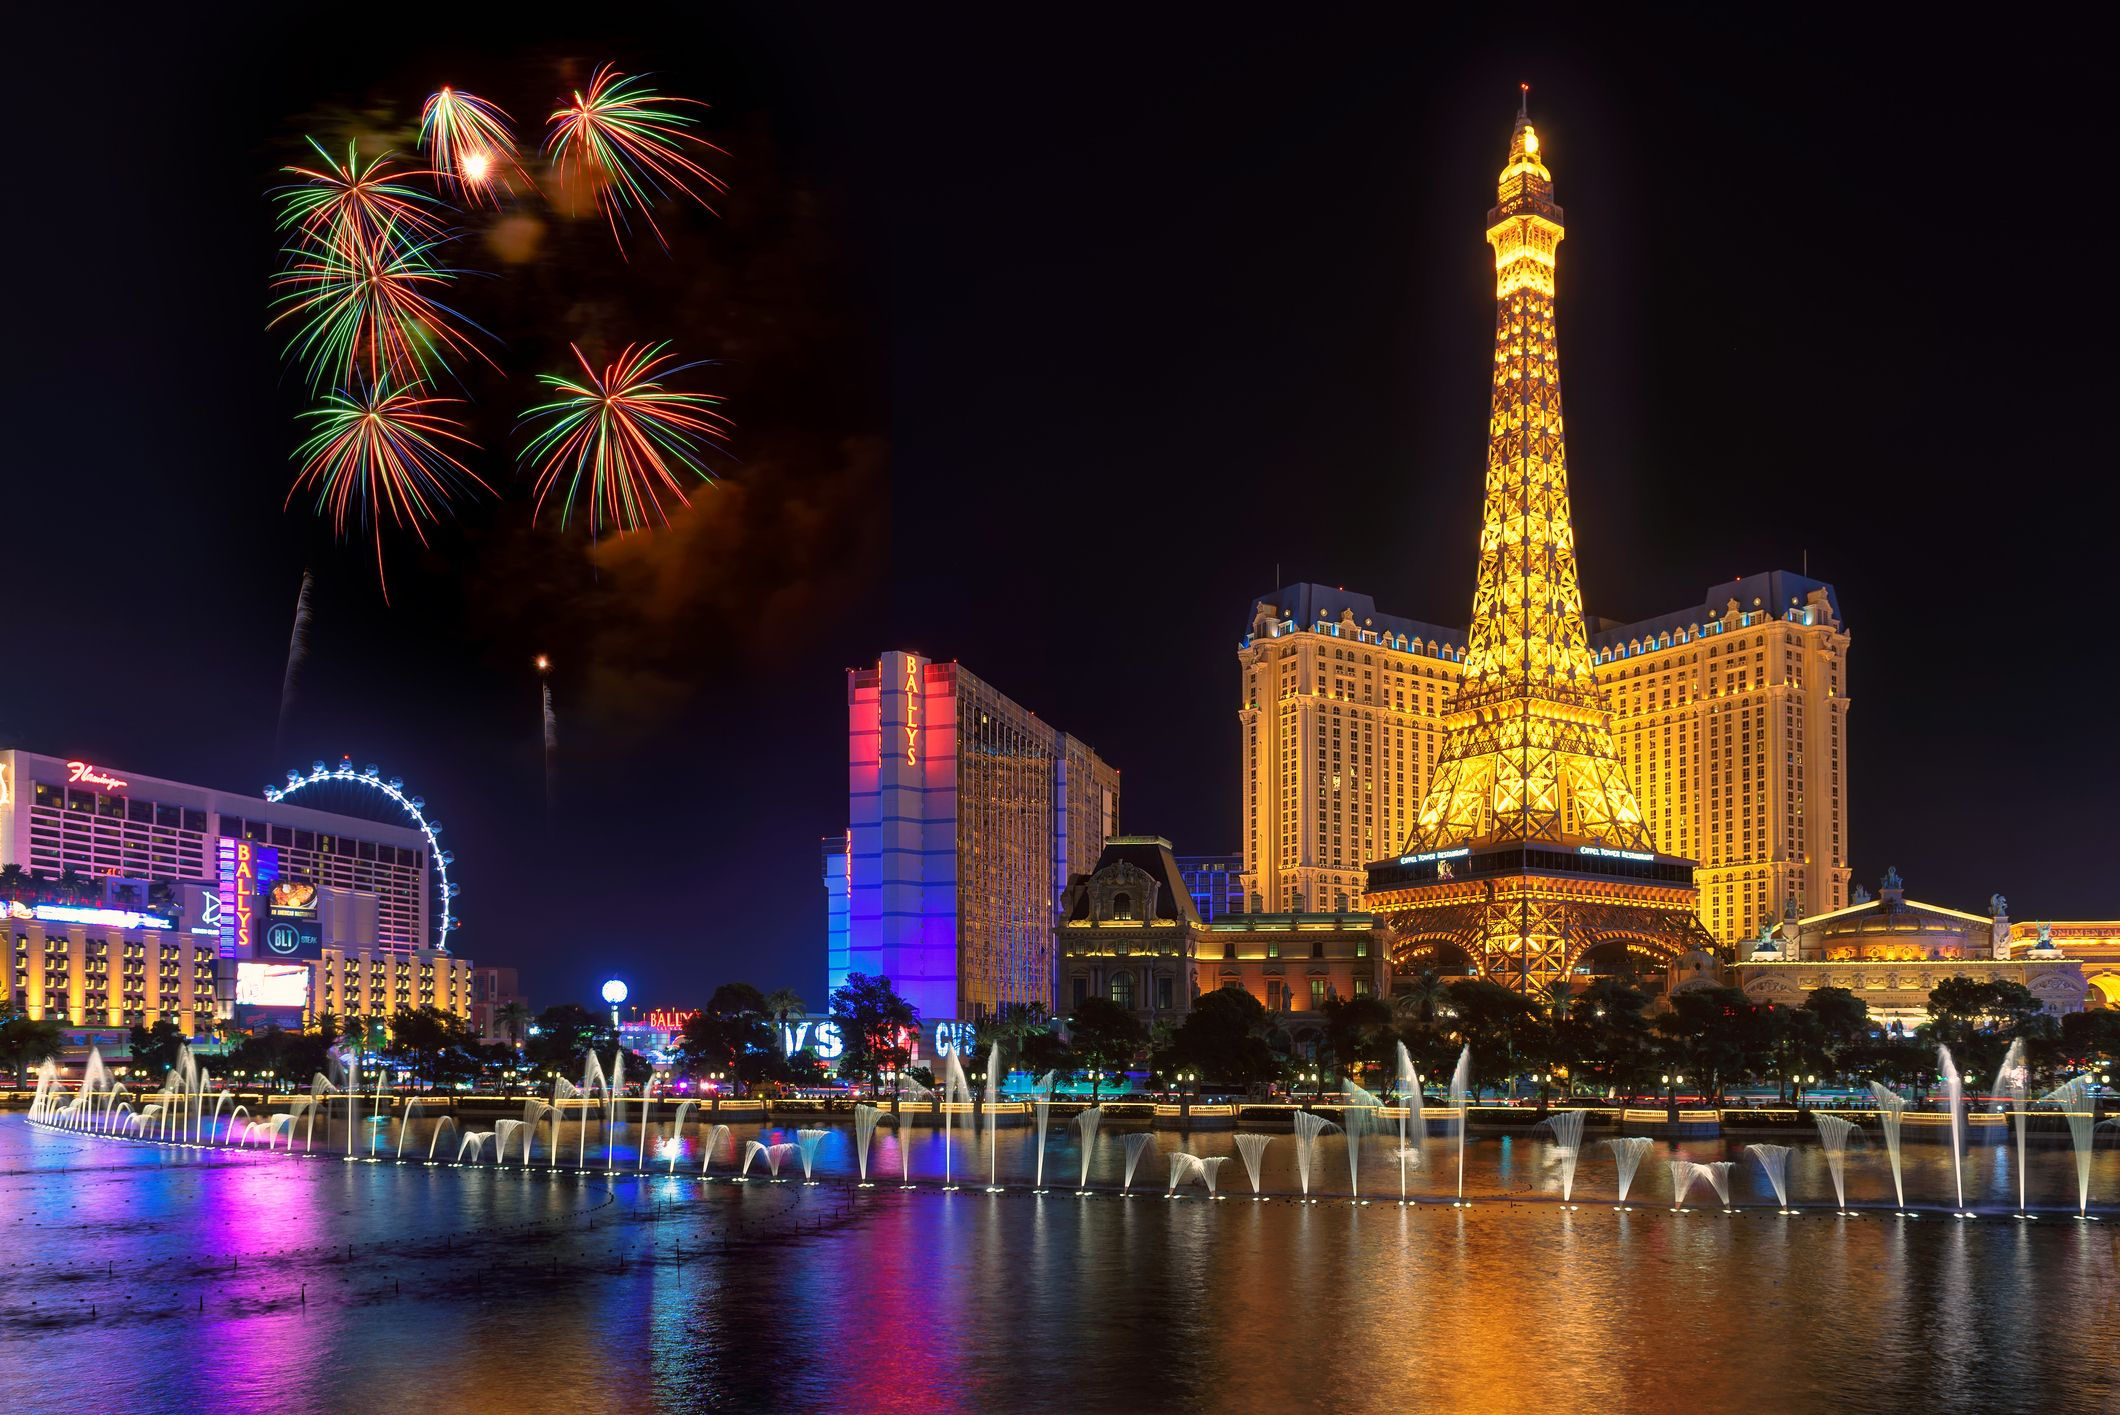 Luxury airline hosting 26,000 trip from Las Vegas to